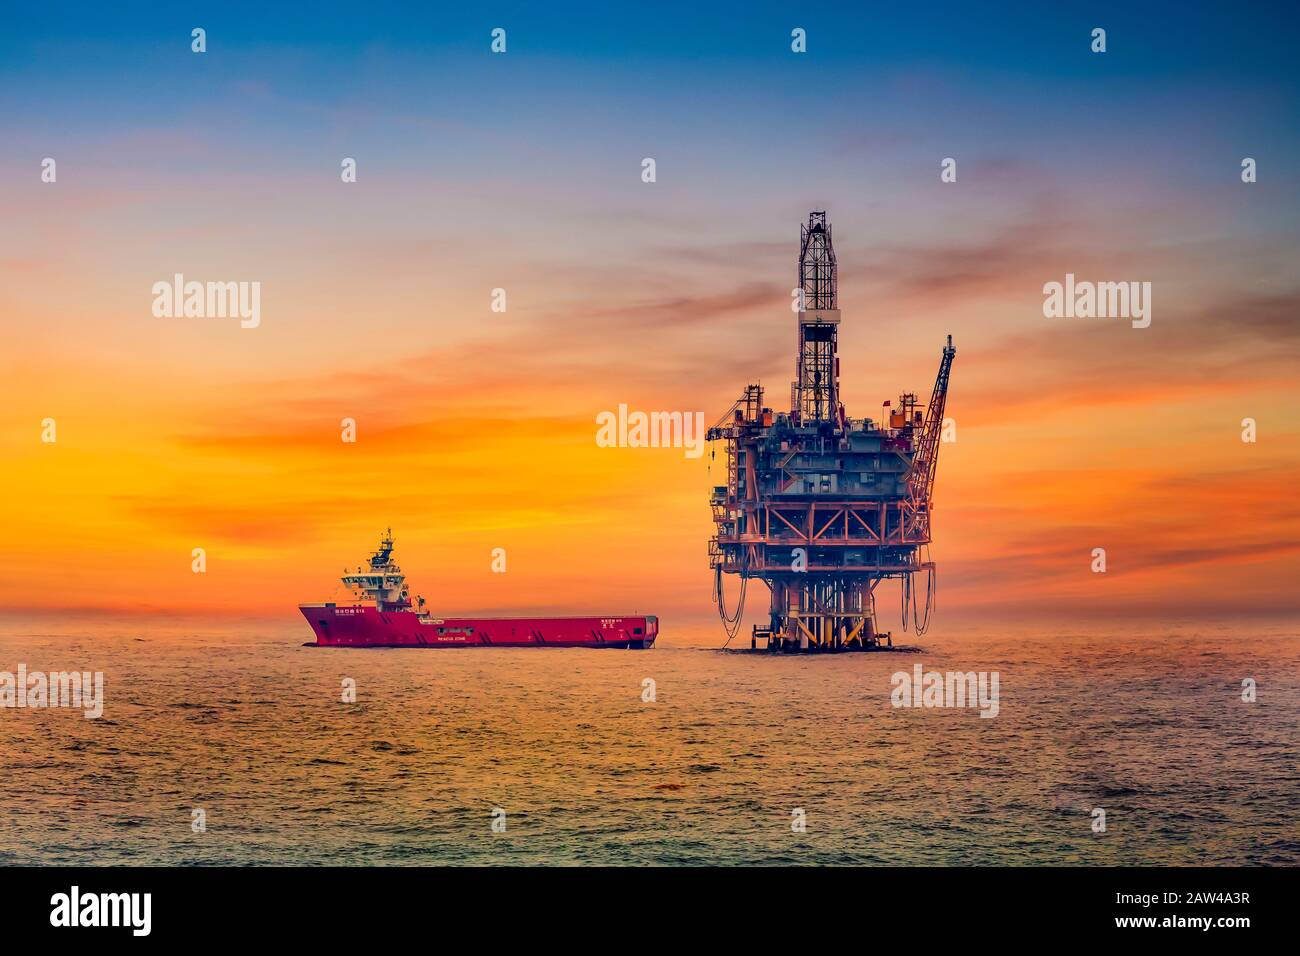 An ocean oil rig and supply ship in the South China Sea near Japan. Stock Photo